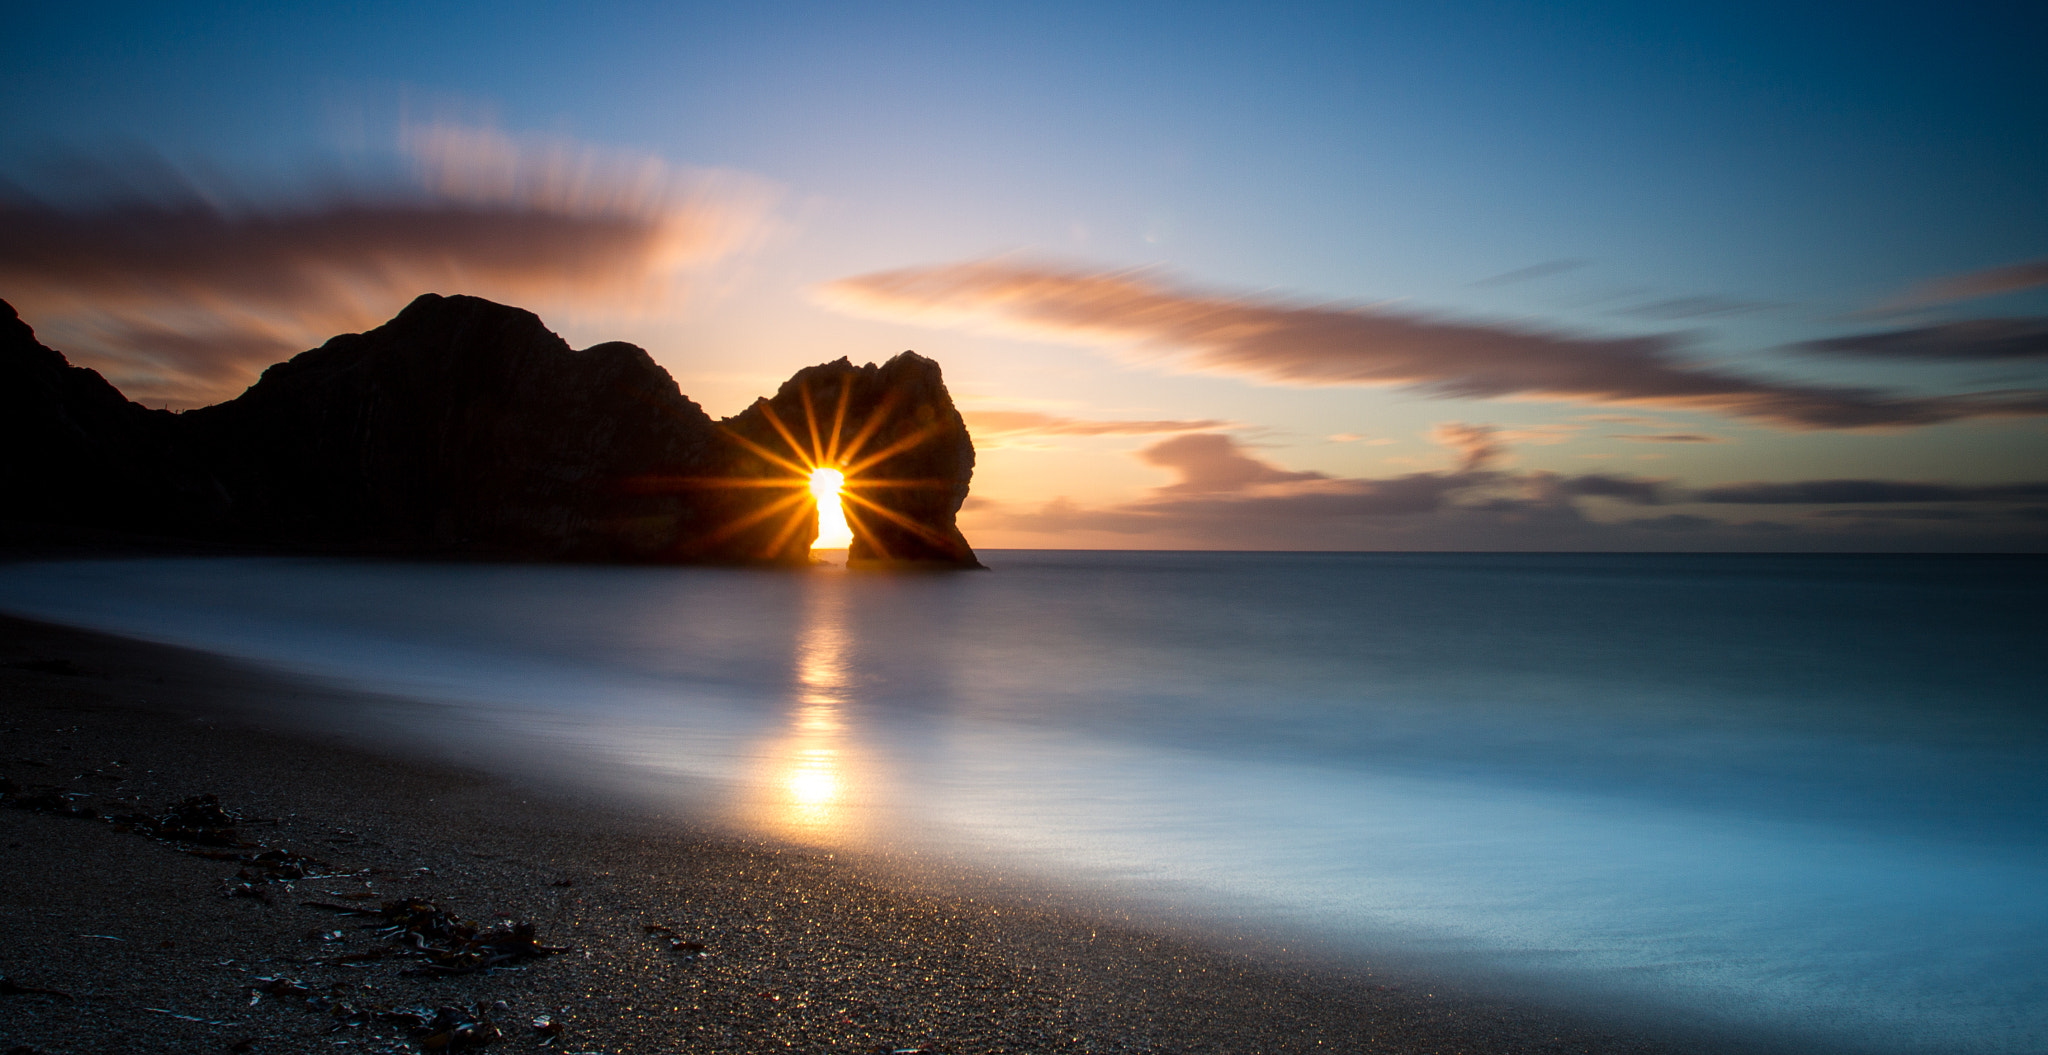 Photograph Durdle Door by Kev Spiers on 500px